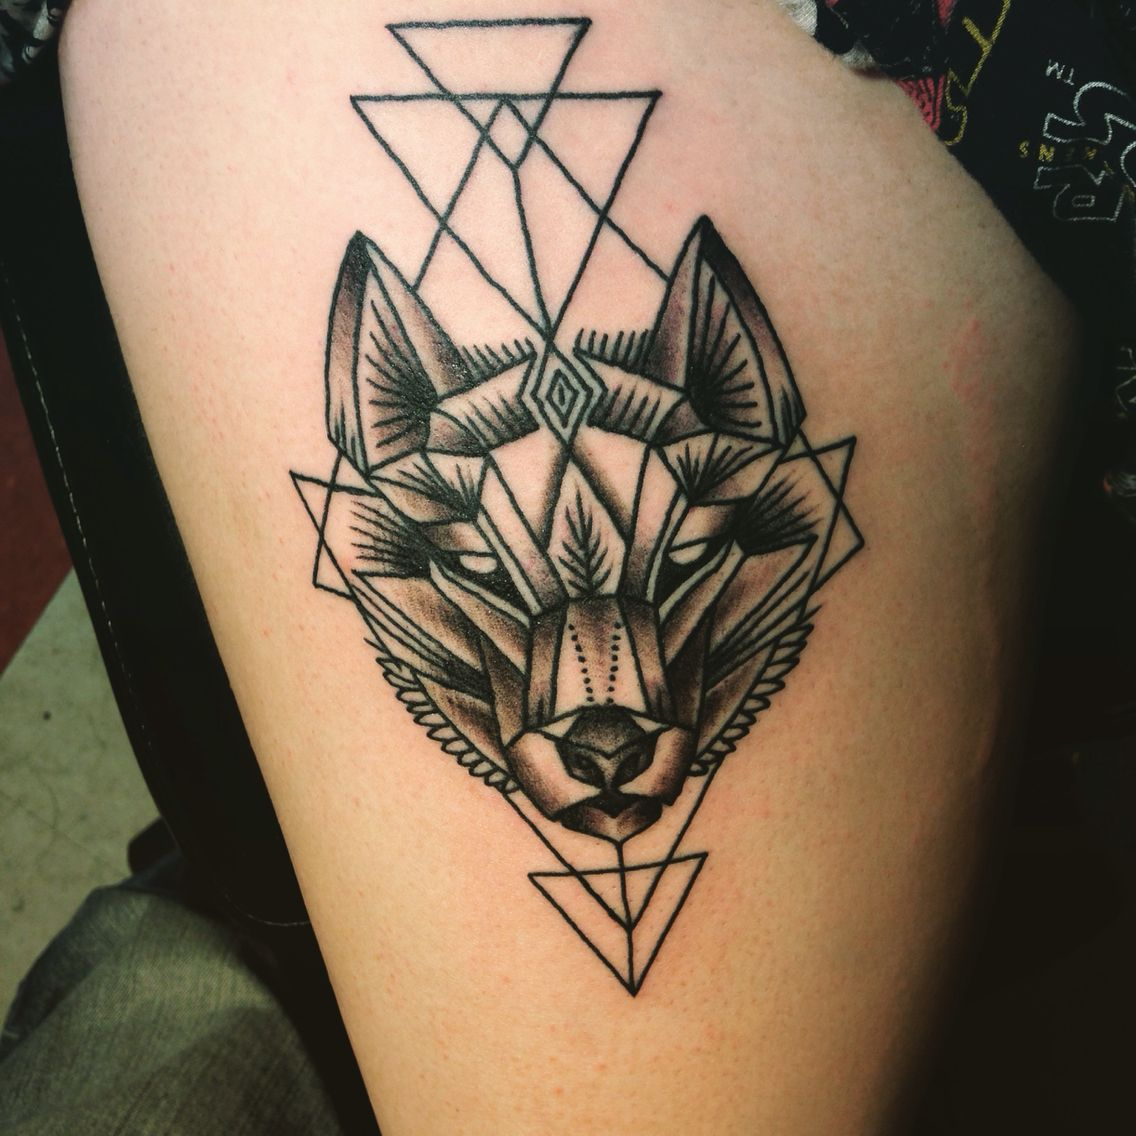 Throw Me To The Wolves And Ill Come Back Leading The Pack Tattoos